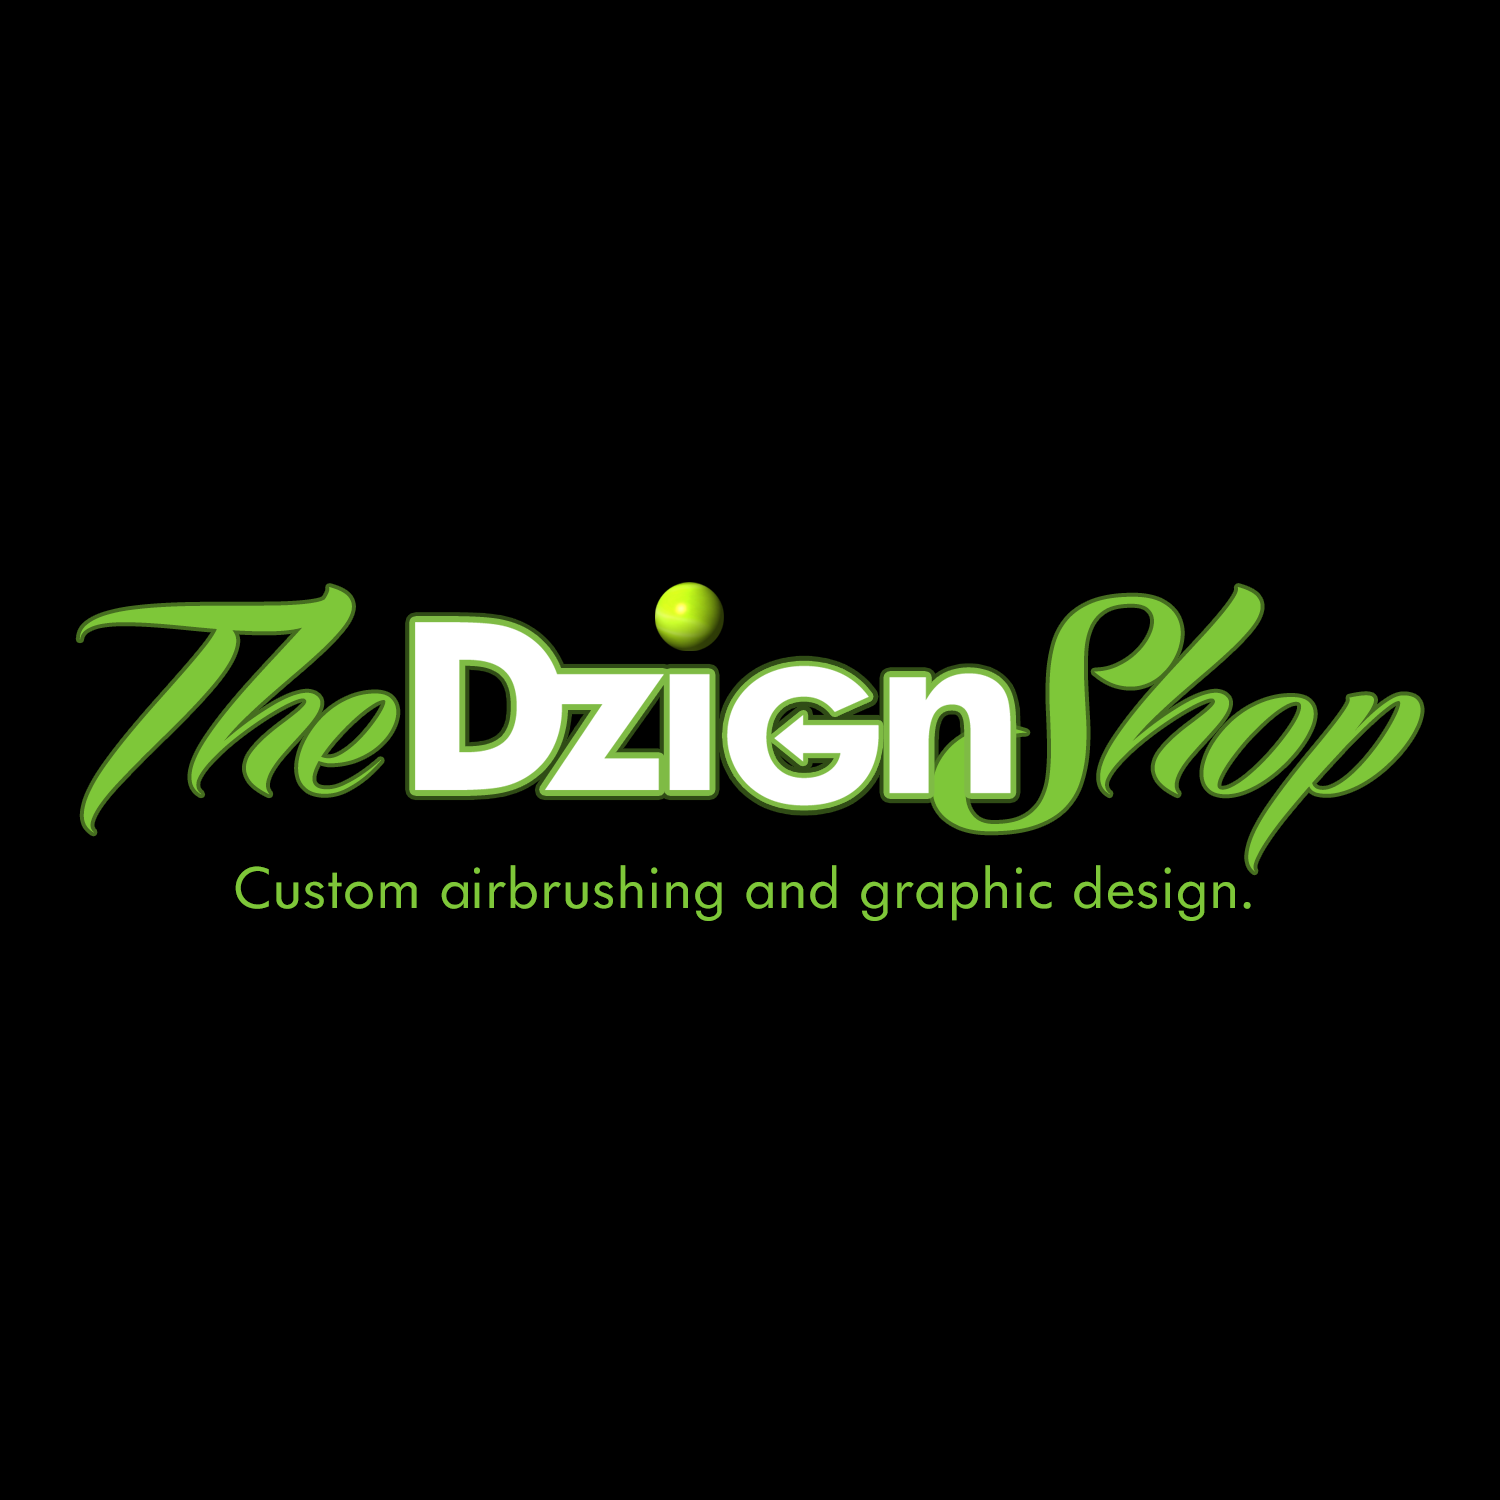 The Dzign Shop Custom Airbrush And Graphic Design Services Connecticut